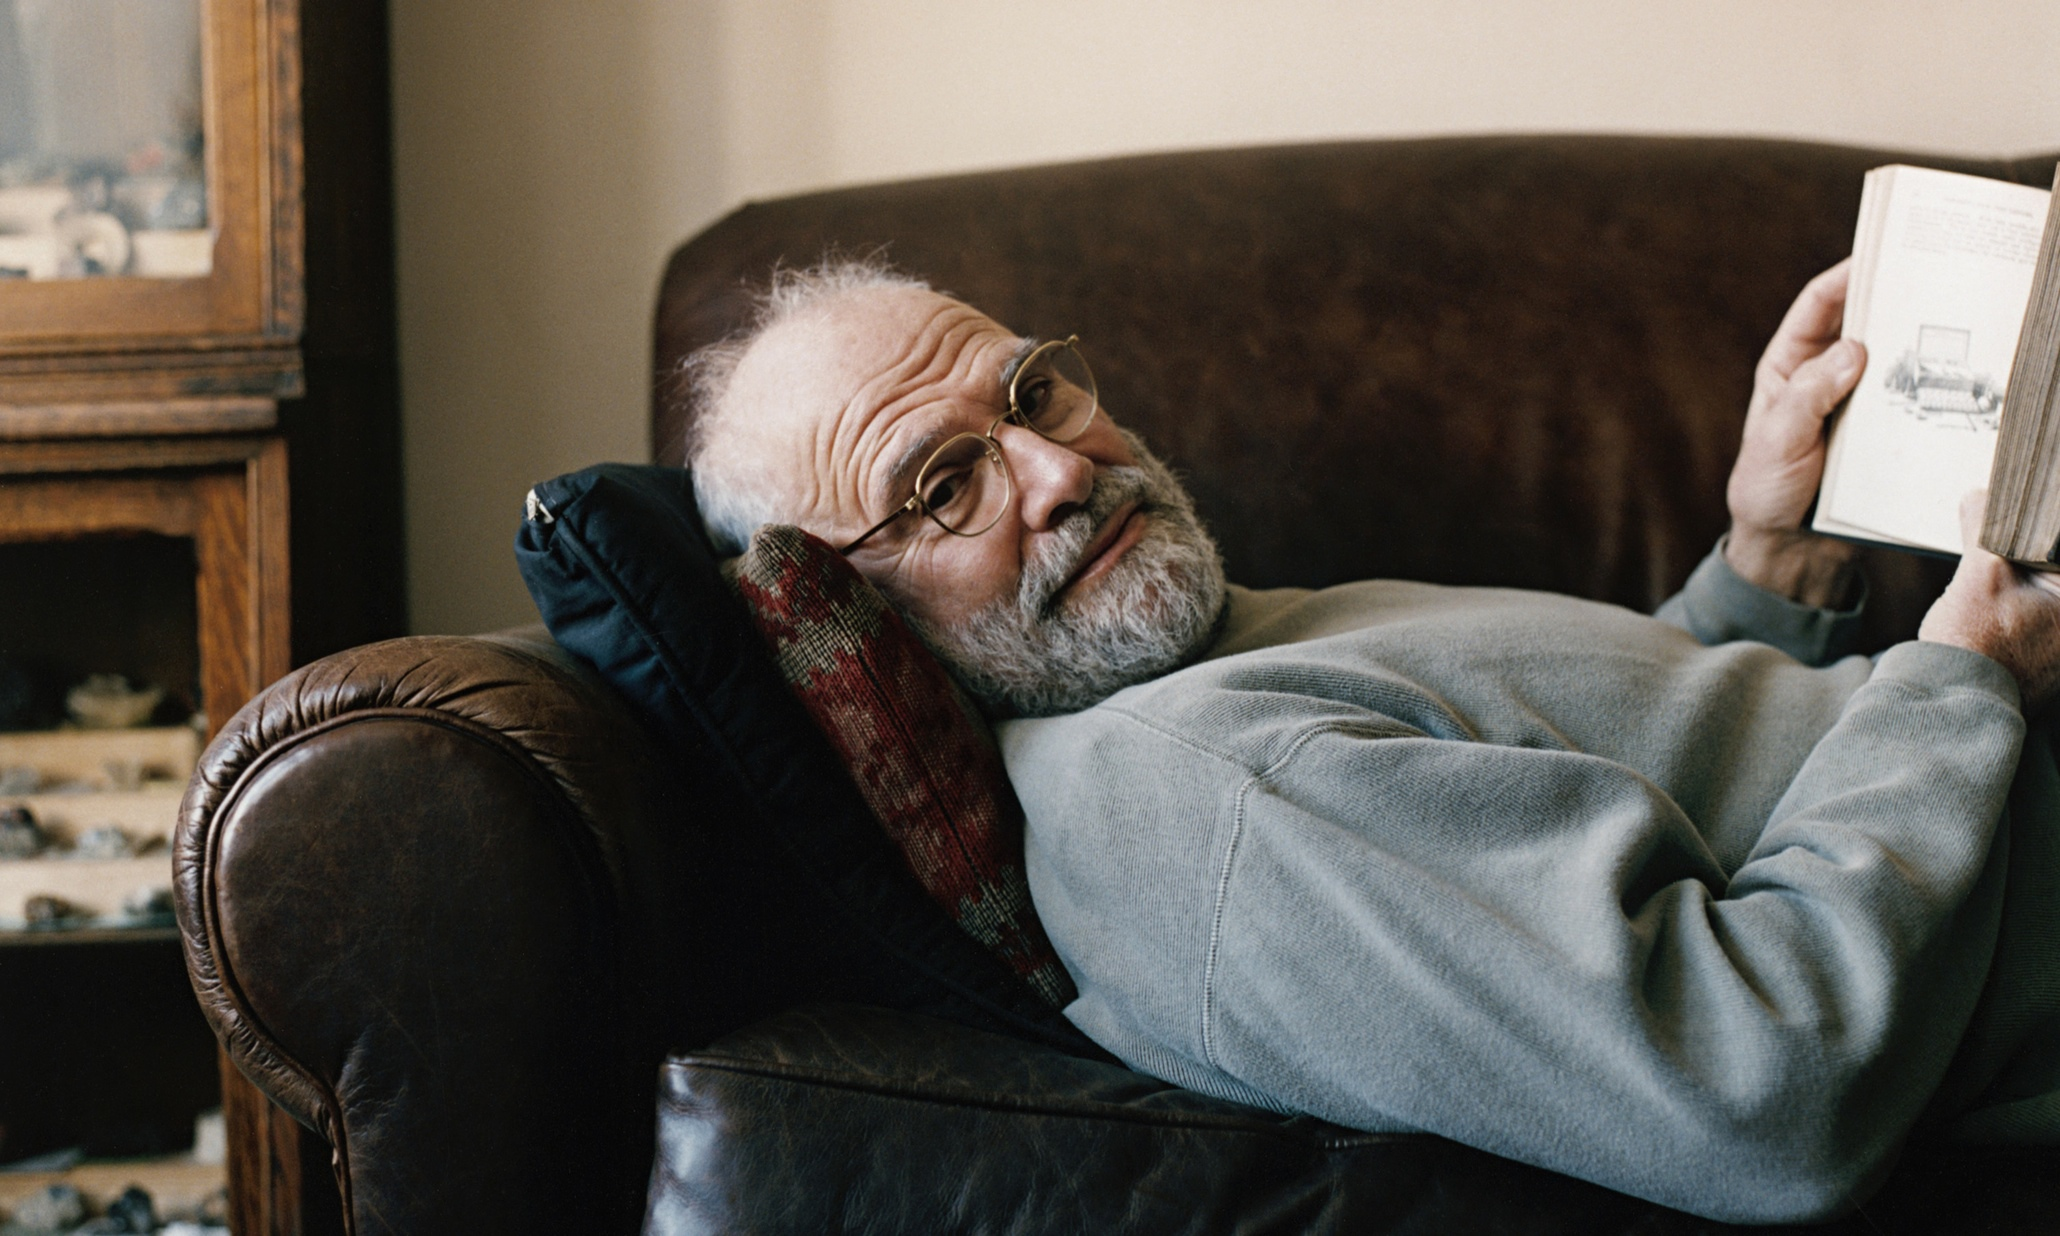 oliver sacks It takes a special energy, over and above one's creative potential, a special audacity or subversiveness, to strike out in a new direction once one is settled.